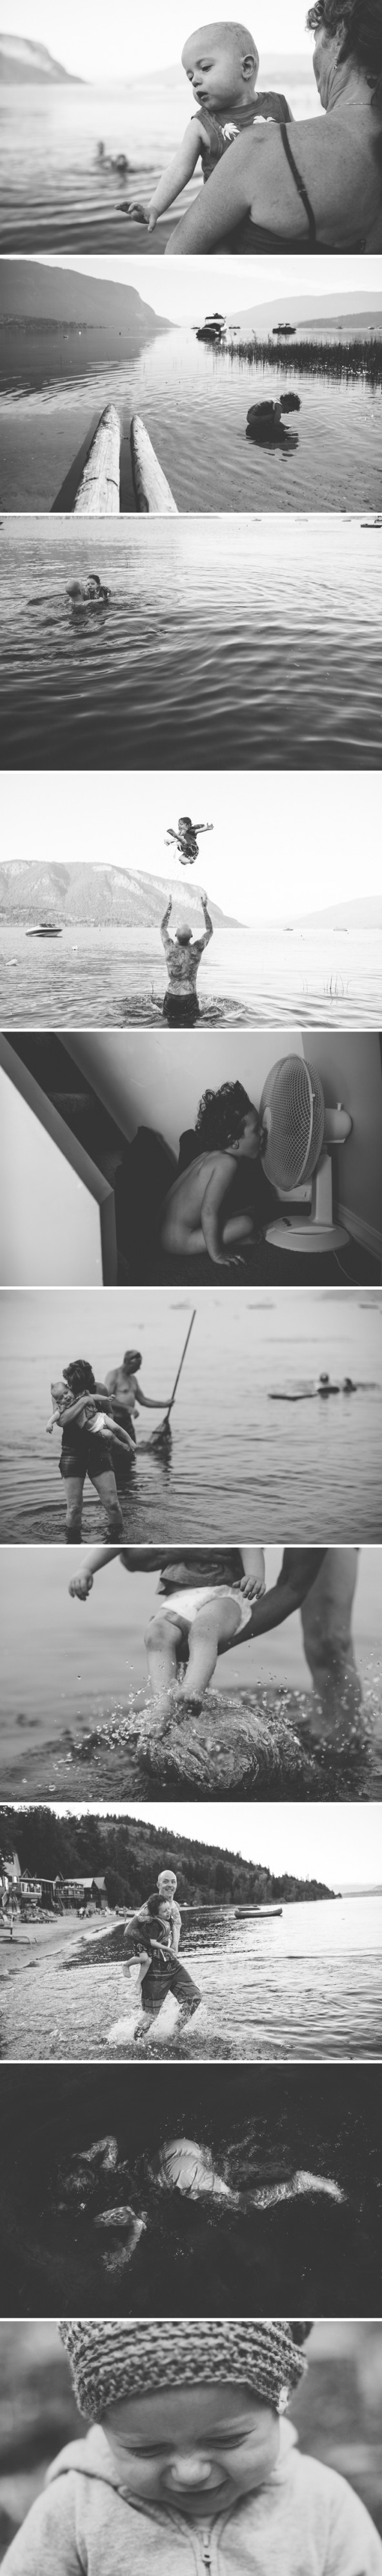 B&W Lifestyle Photography | ©The Paper Deer Photography | thepaperdeer.ca